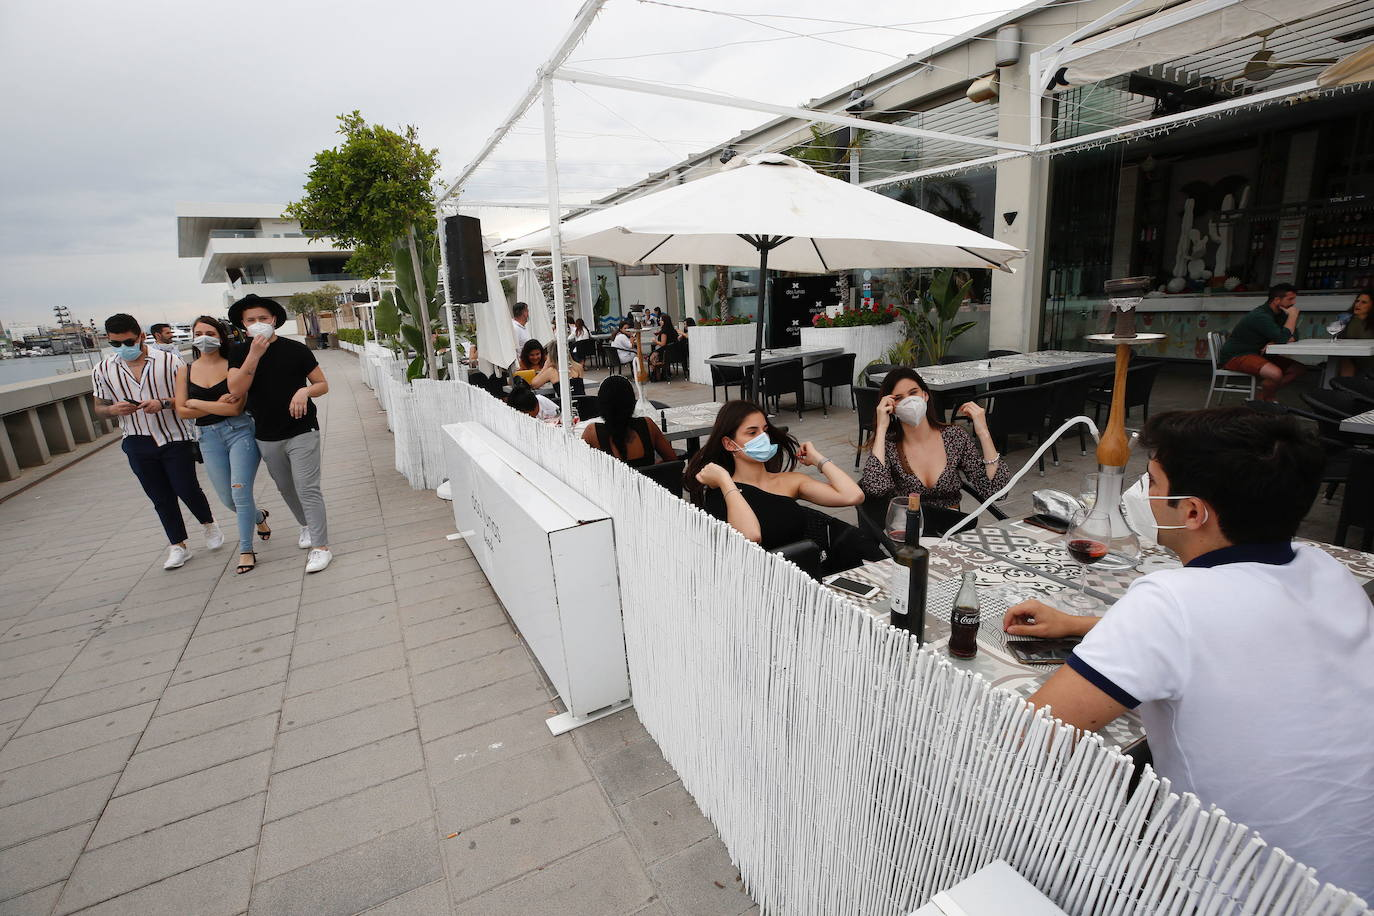 Valencia City Council conveys its concern to the residents and promises consensus with the nightlife